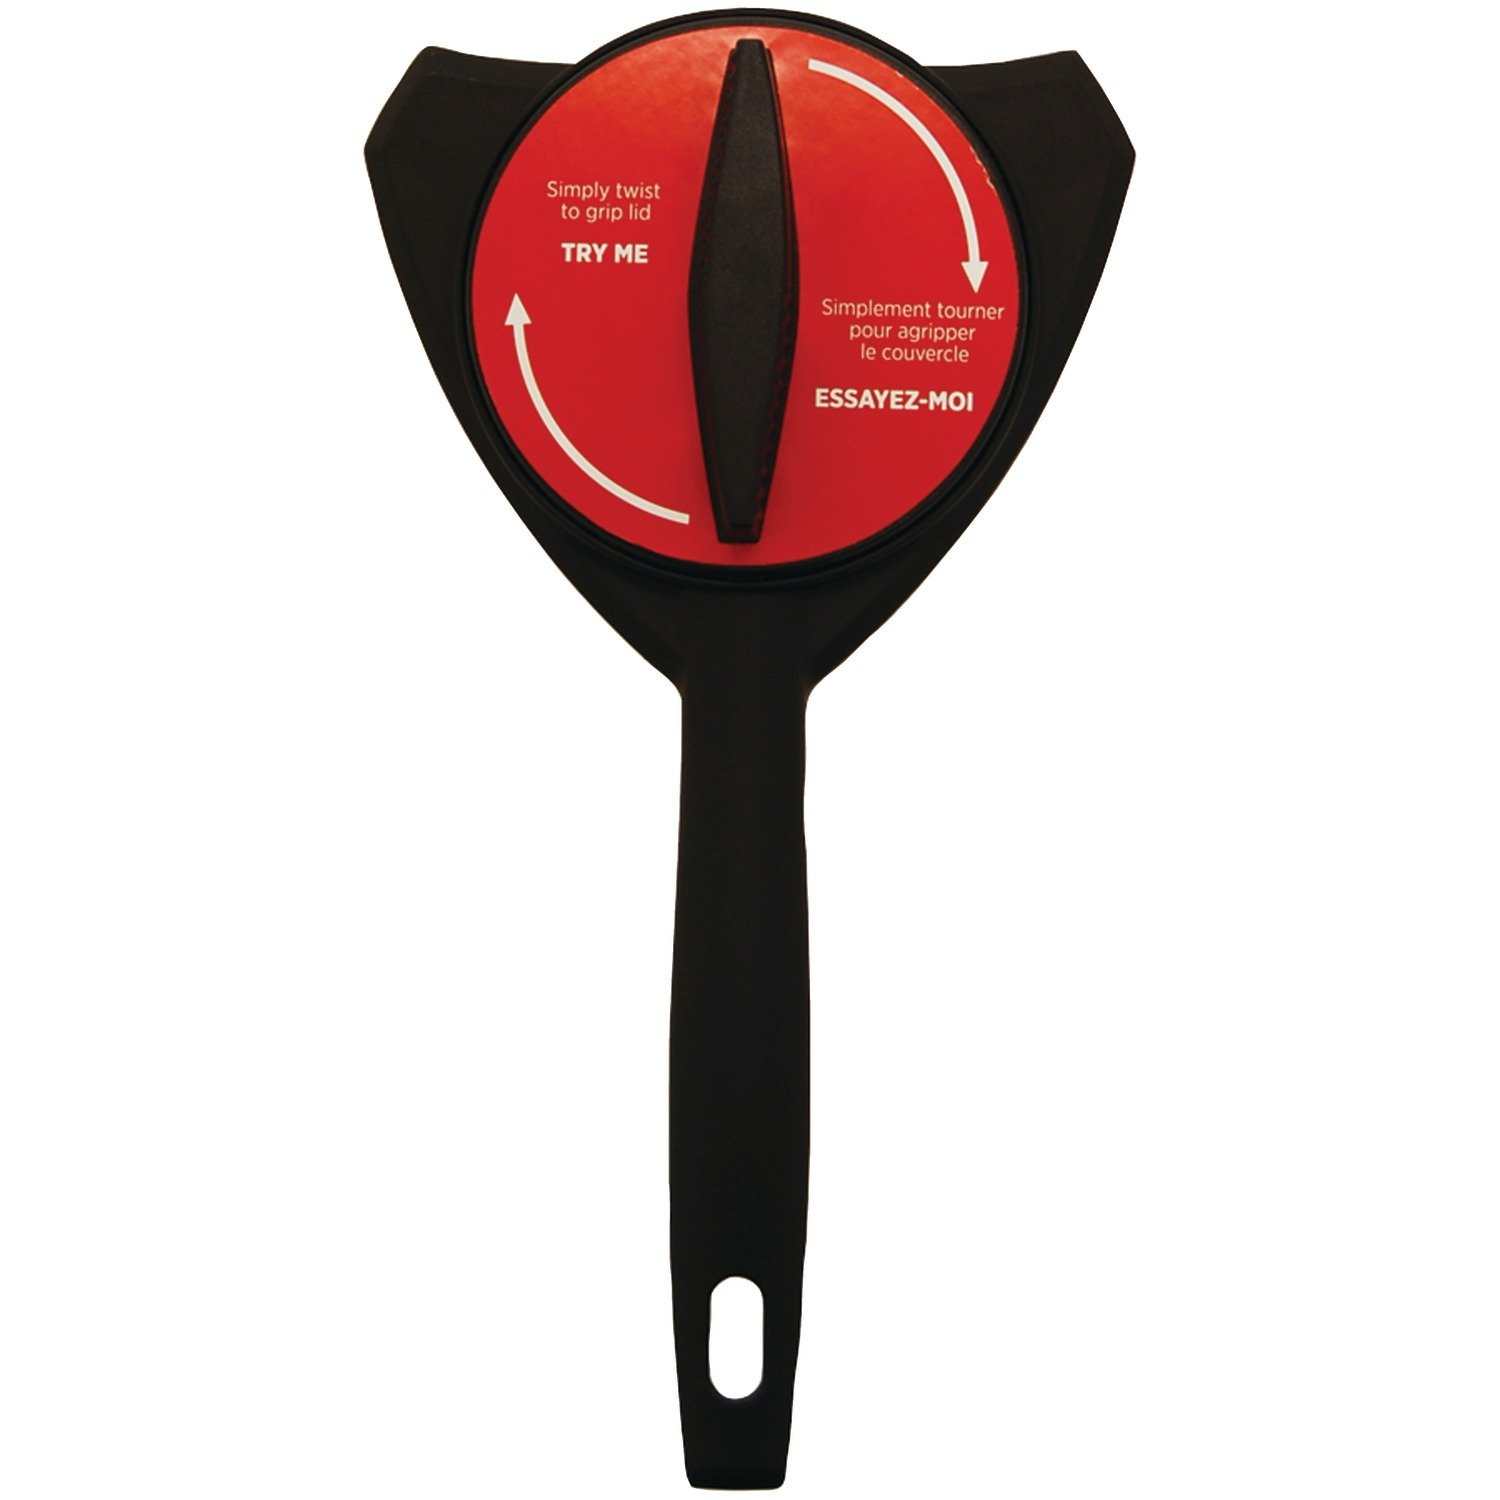 Starfrit 093314-006-0000 Mightigrip Jar Opener,Black/Red 61qEM1qoO8L